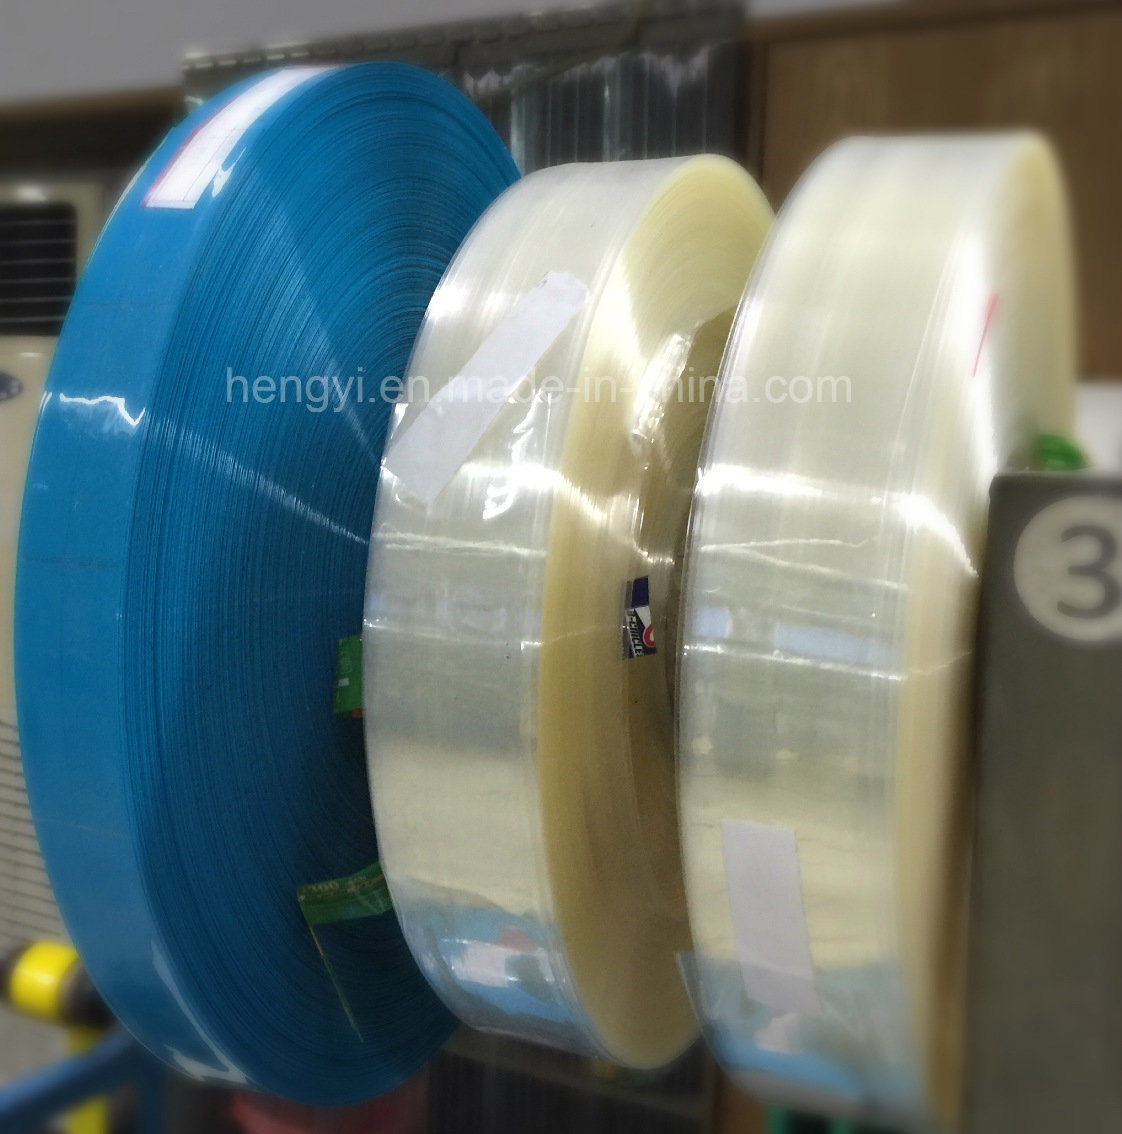 Printing Label for Bottle Cap and Bottle Neck Seal (PVC)